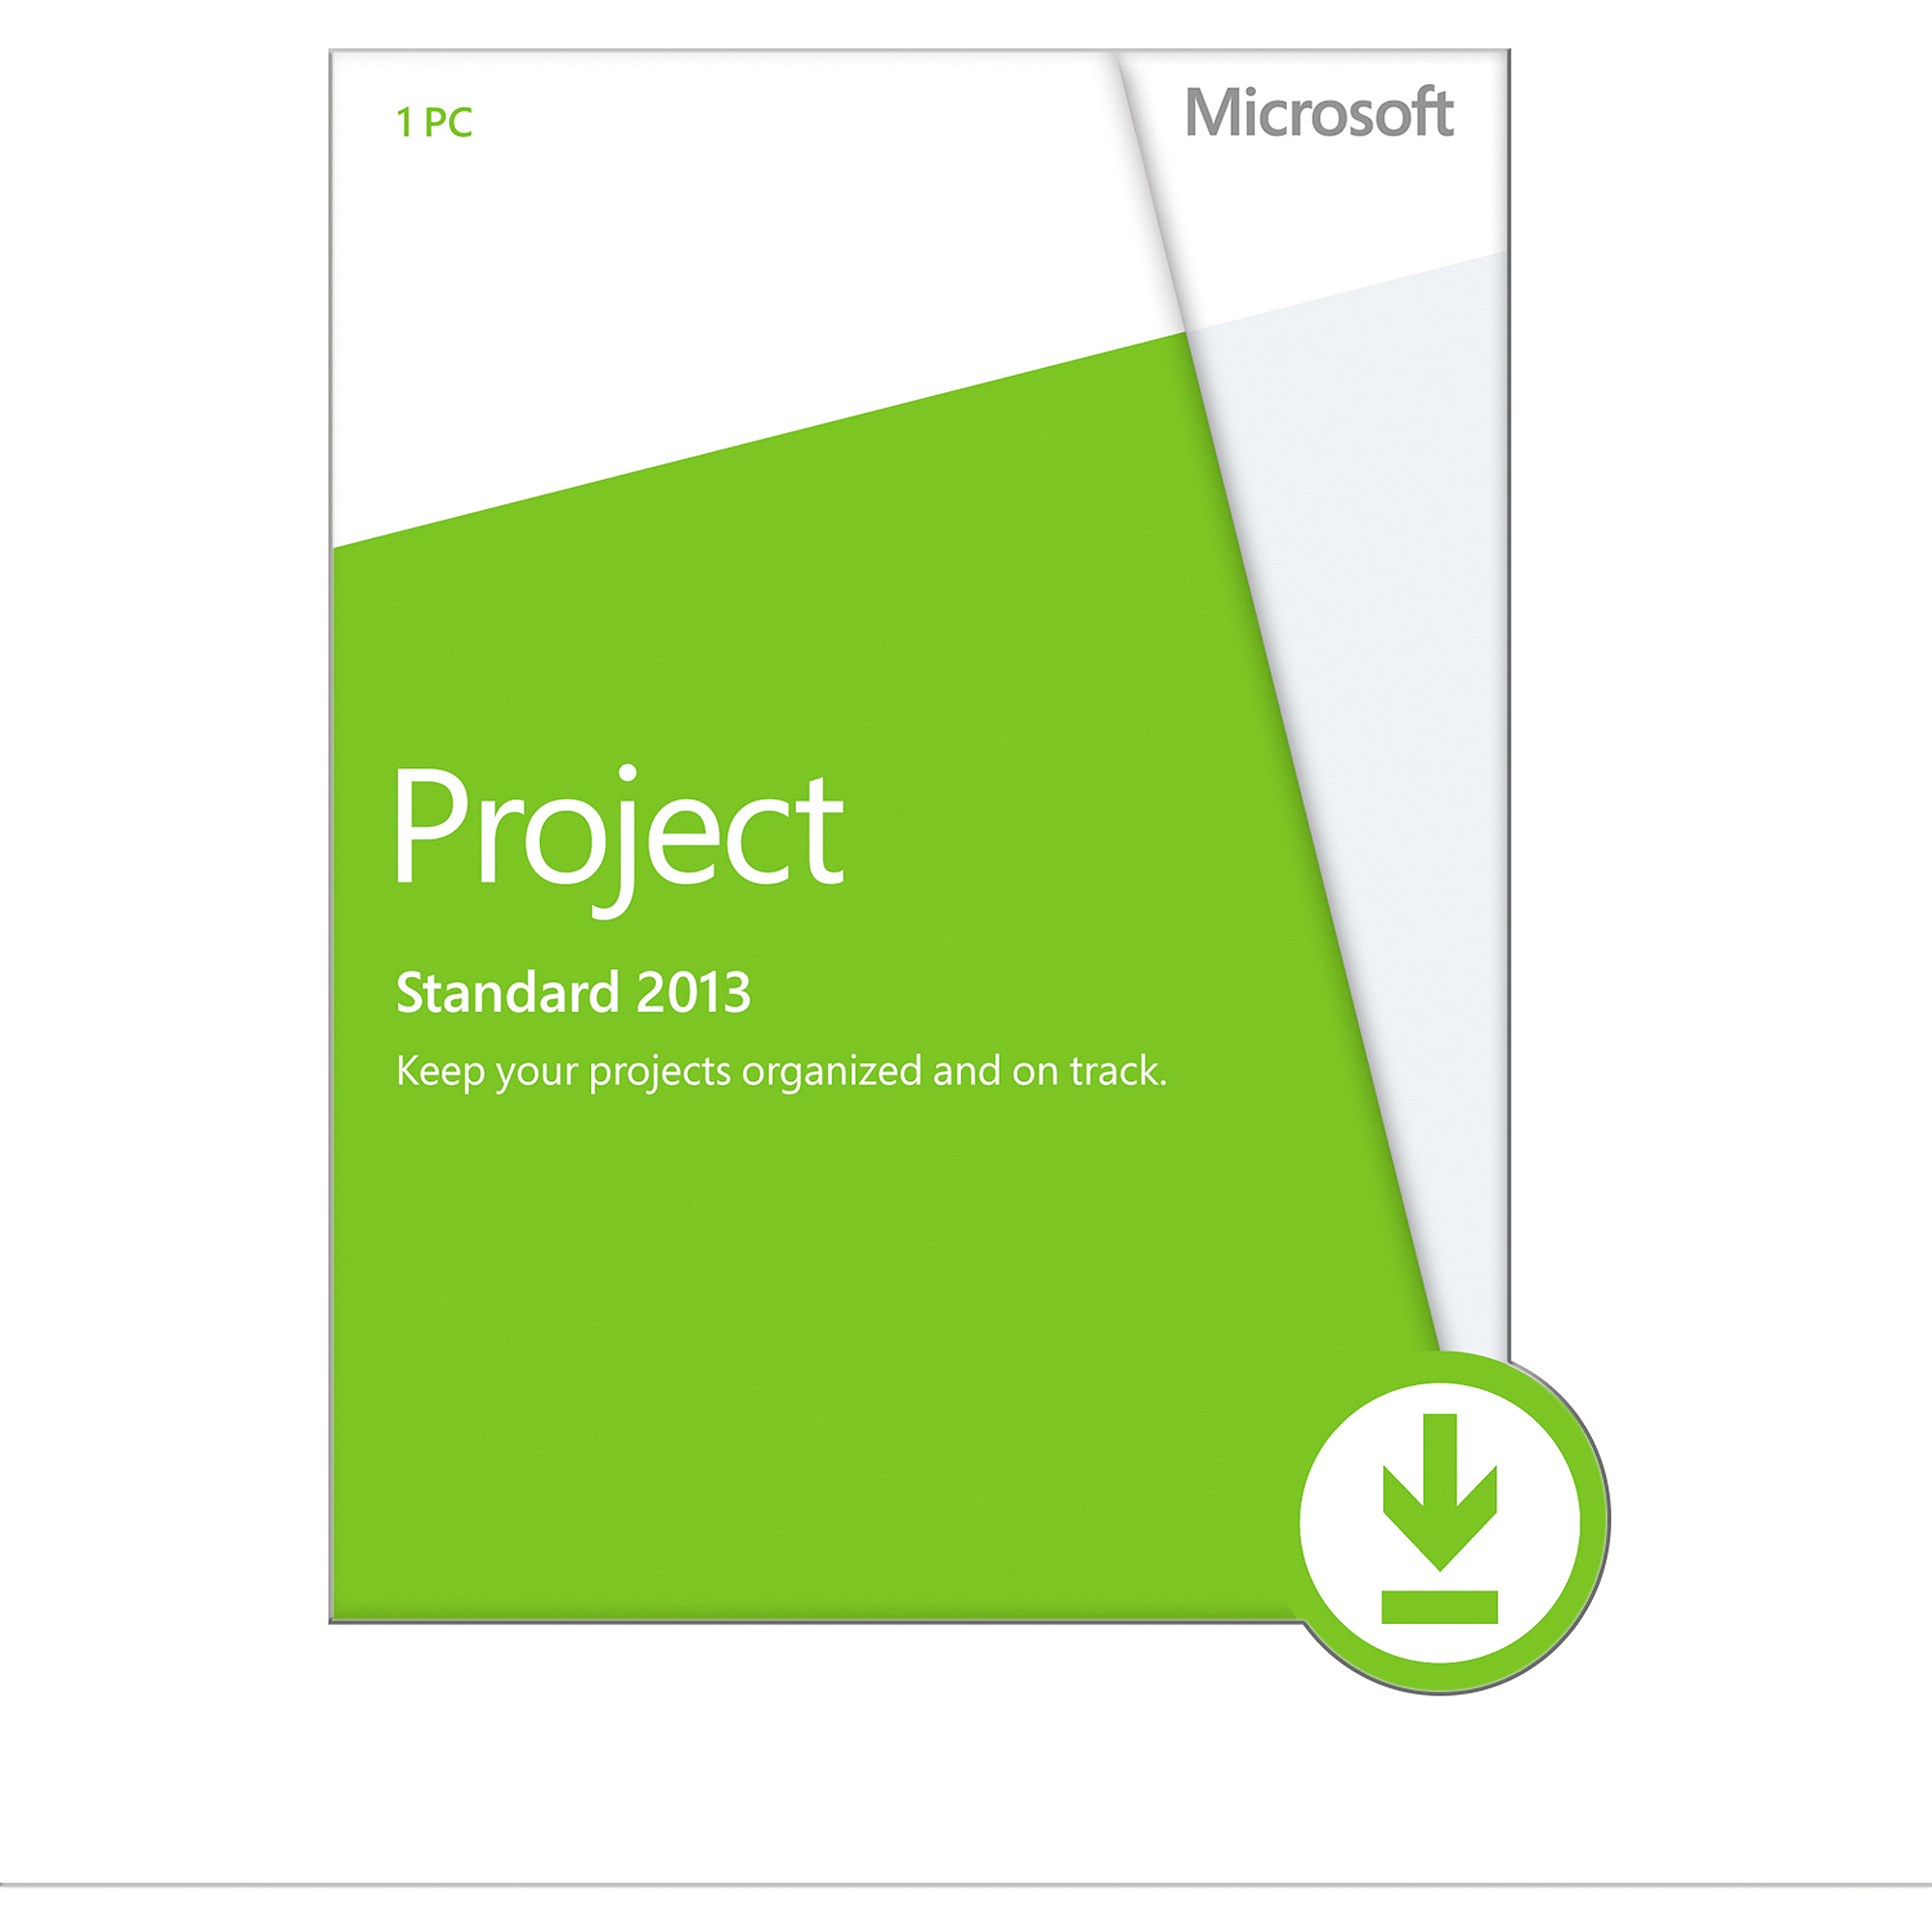 Microsoft Project 2013, 1 PC Download (Email Delivery)